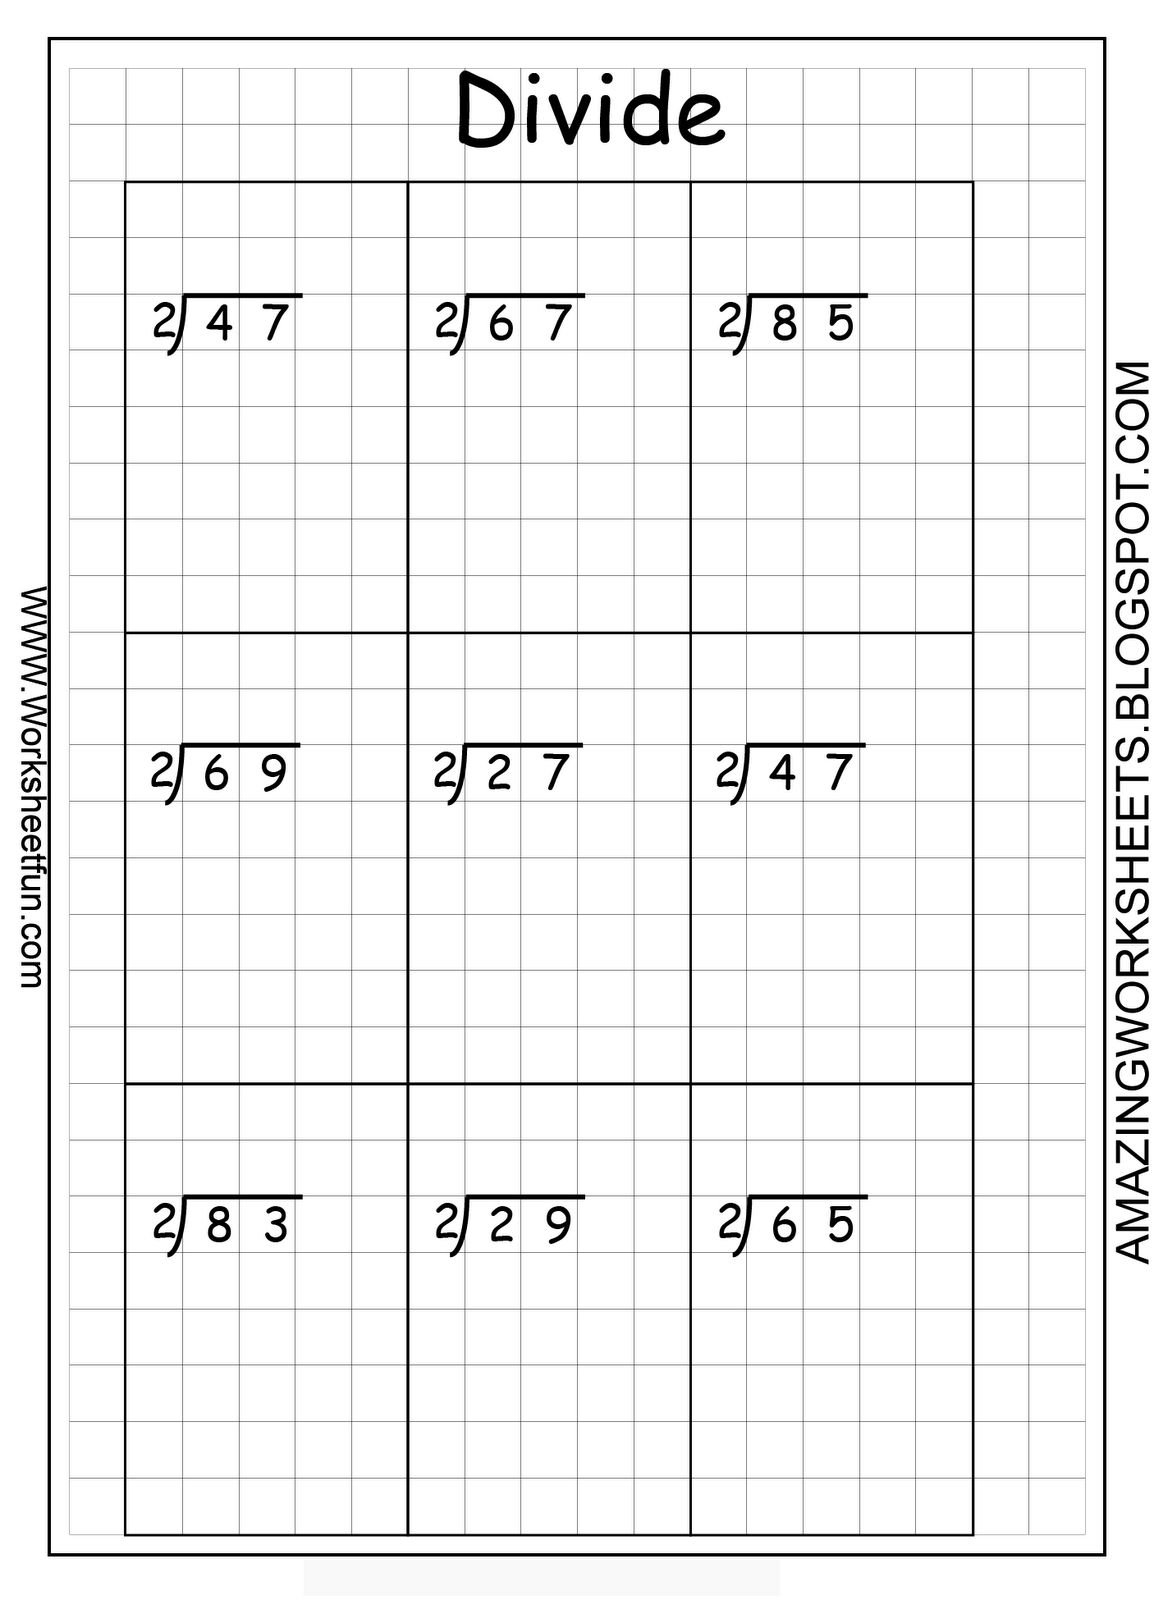 Worksheets Long Division Printable Worksheets long division math pinterest and 2 digits by 1 digit without remainders 10 worksheets free printable worksheets